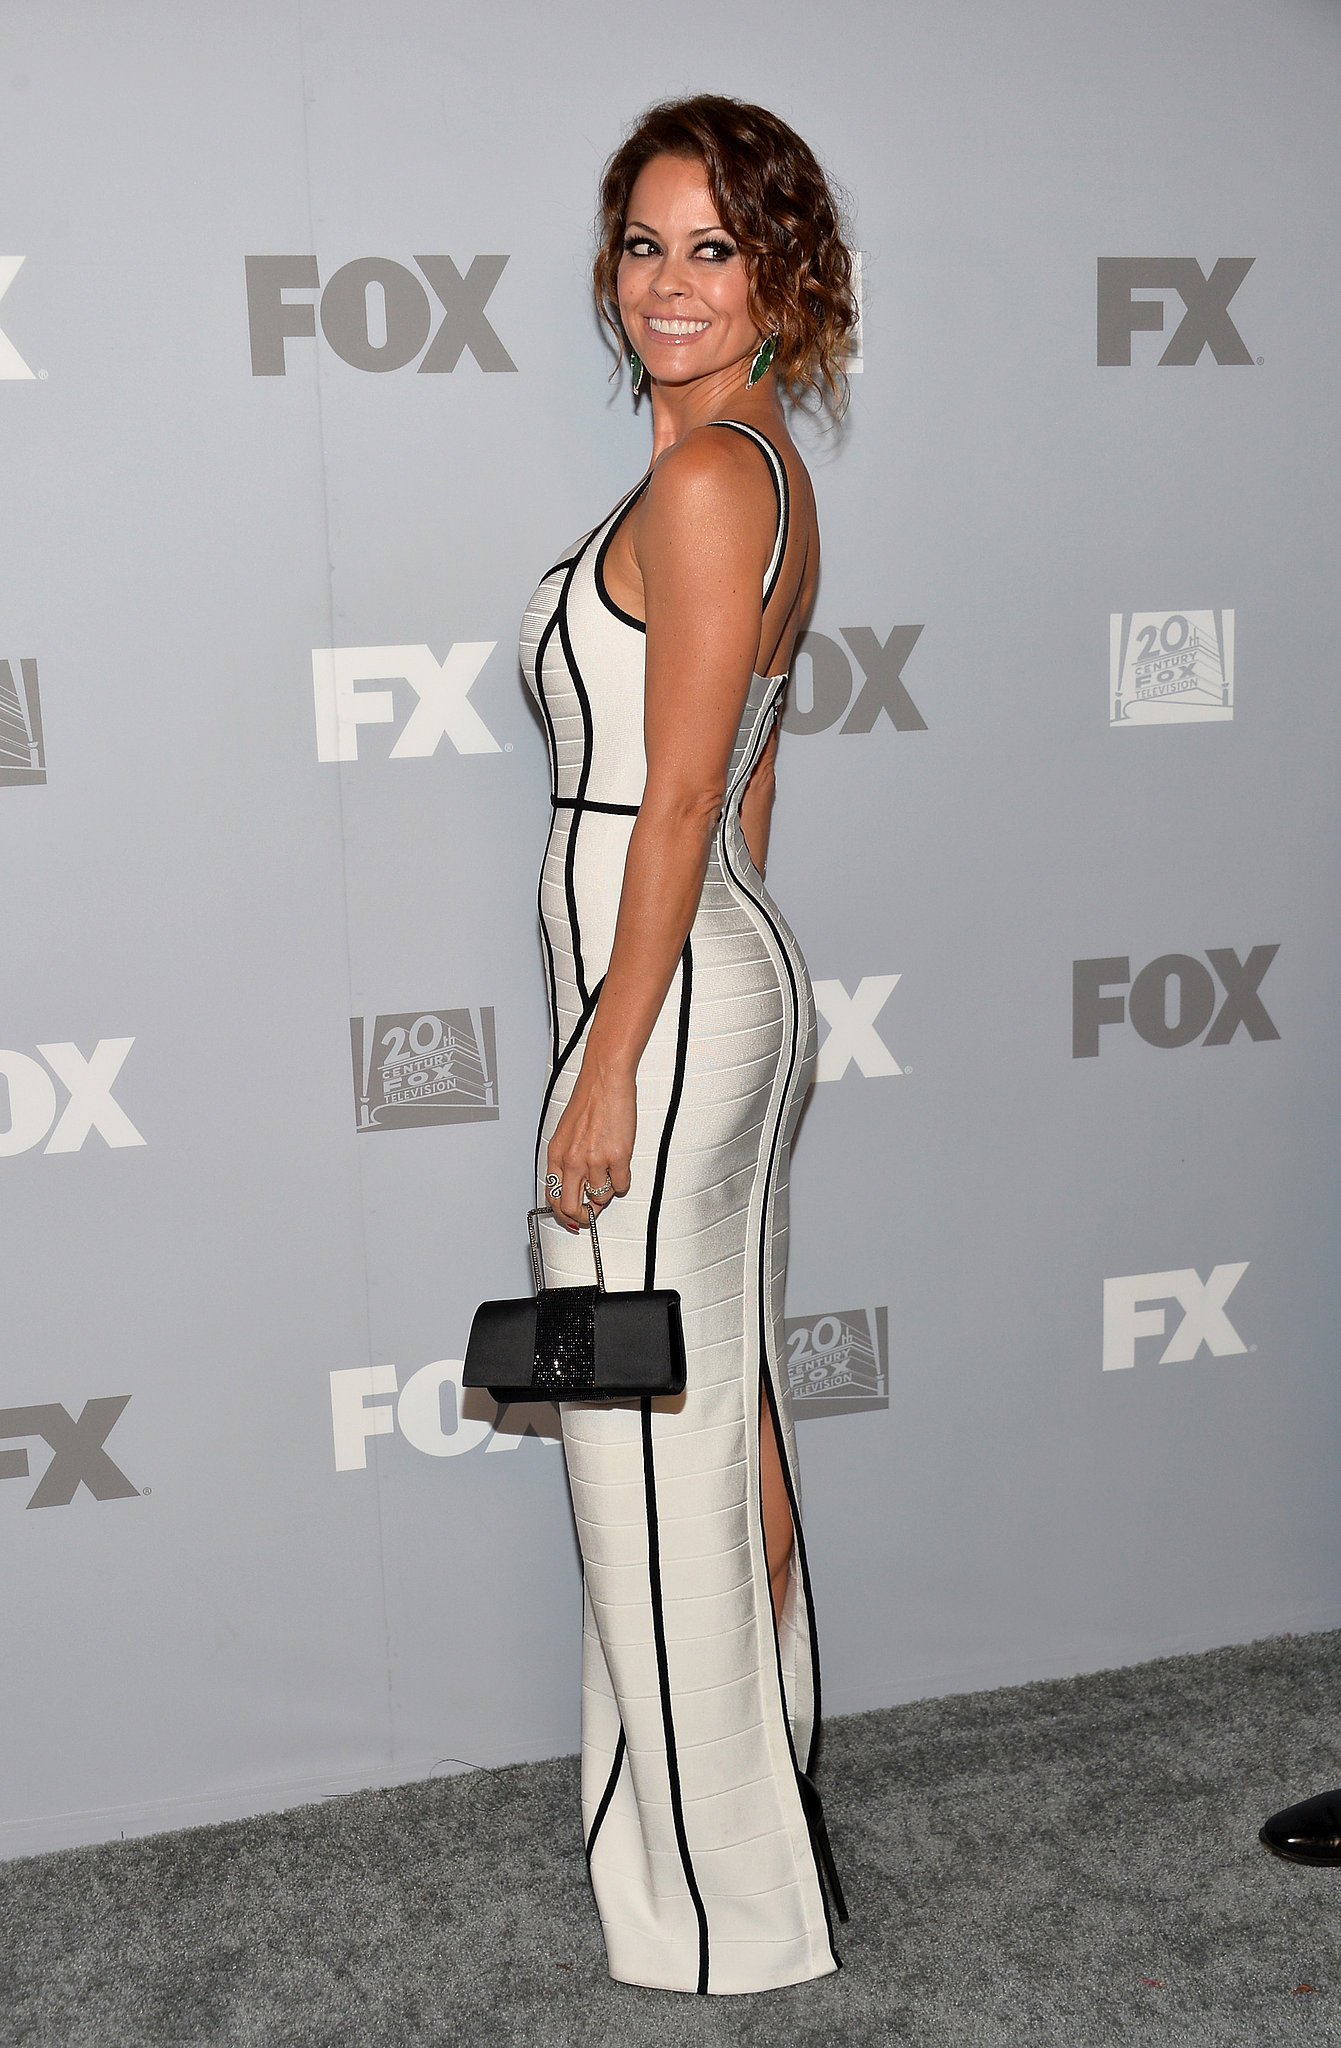 Brooke Burke-Charvet attended the Fox and FX afterparty in LA.